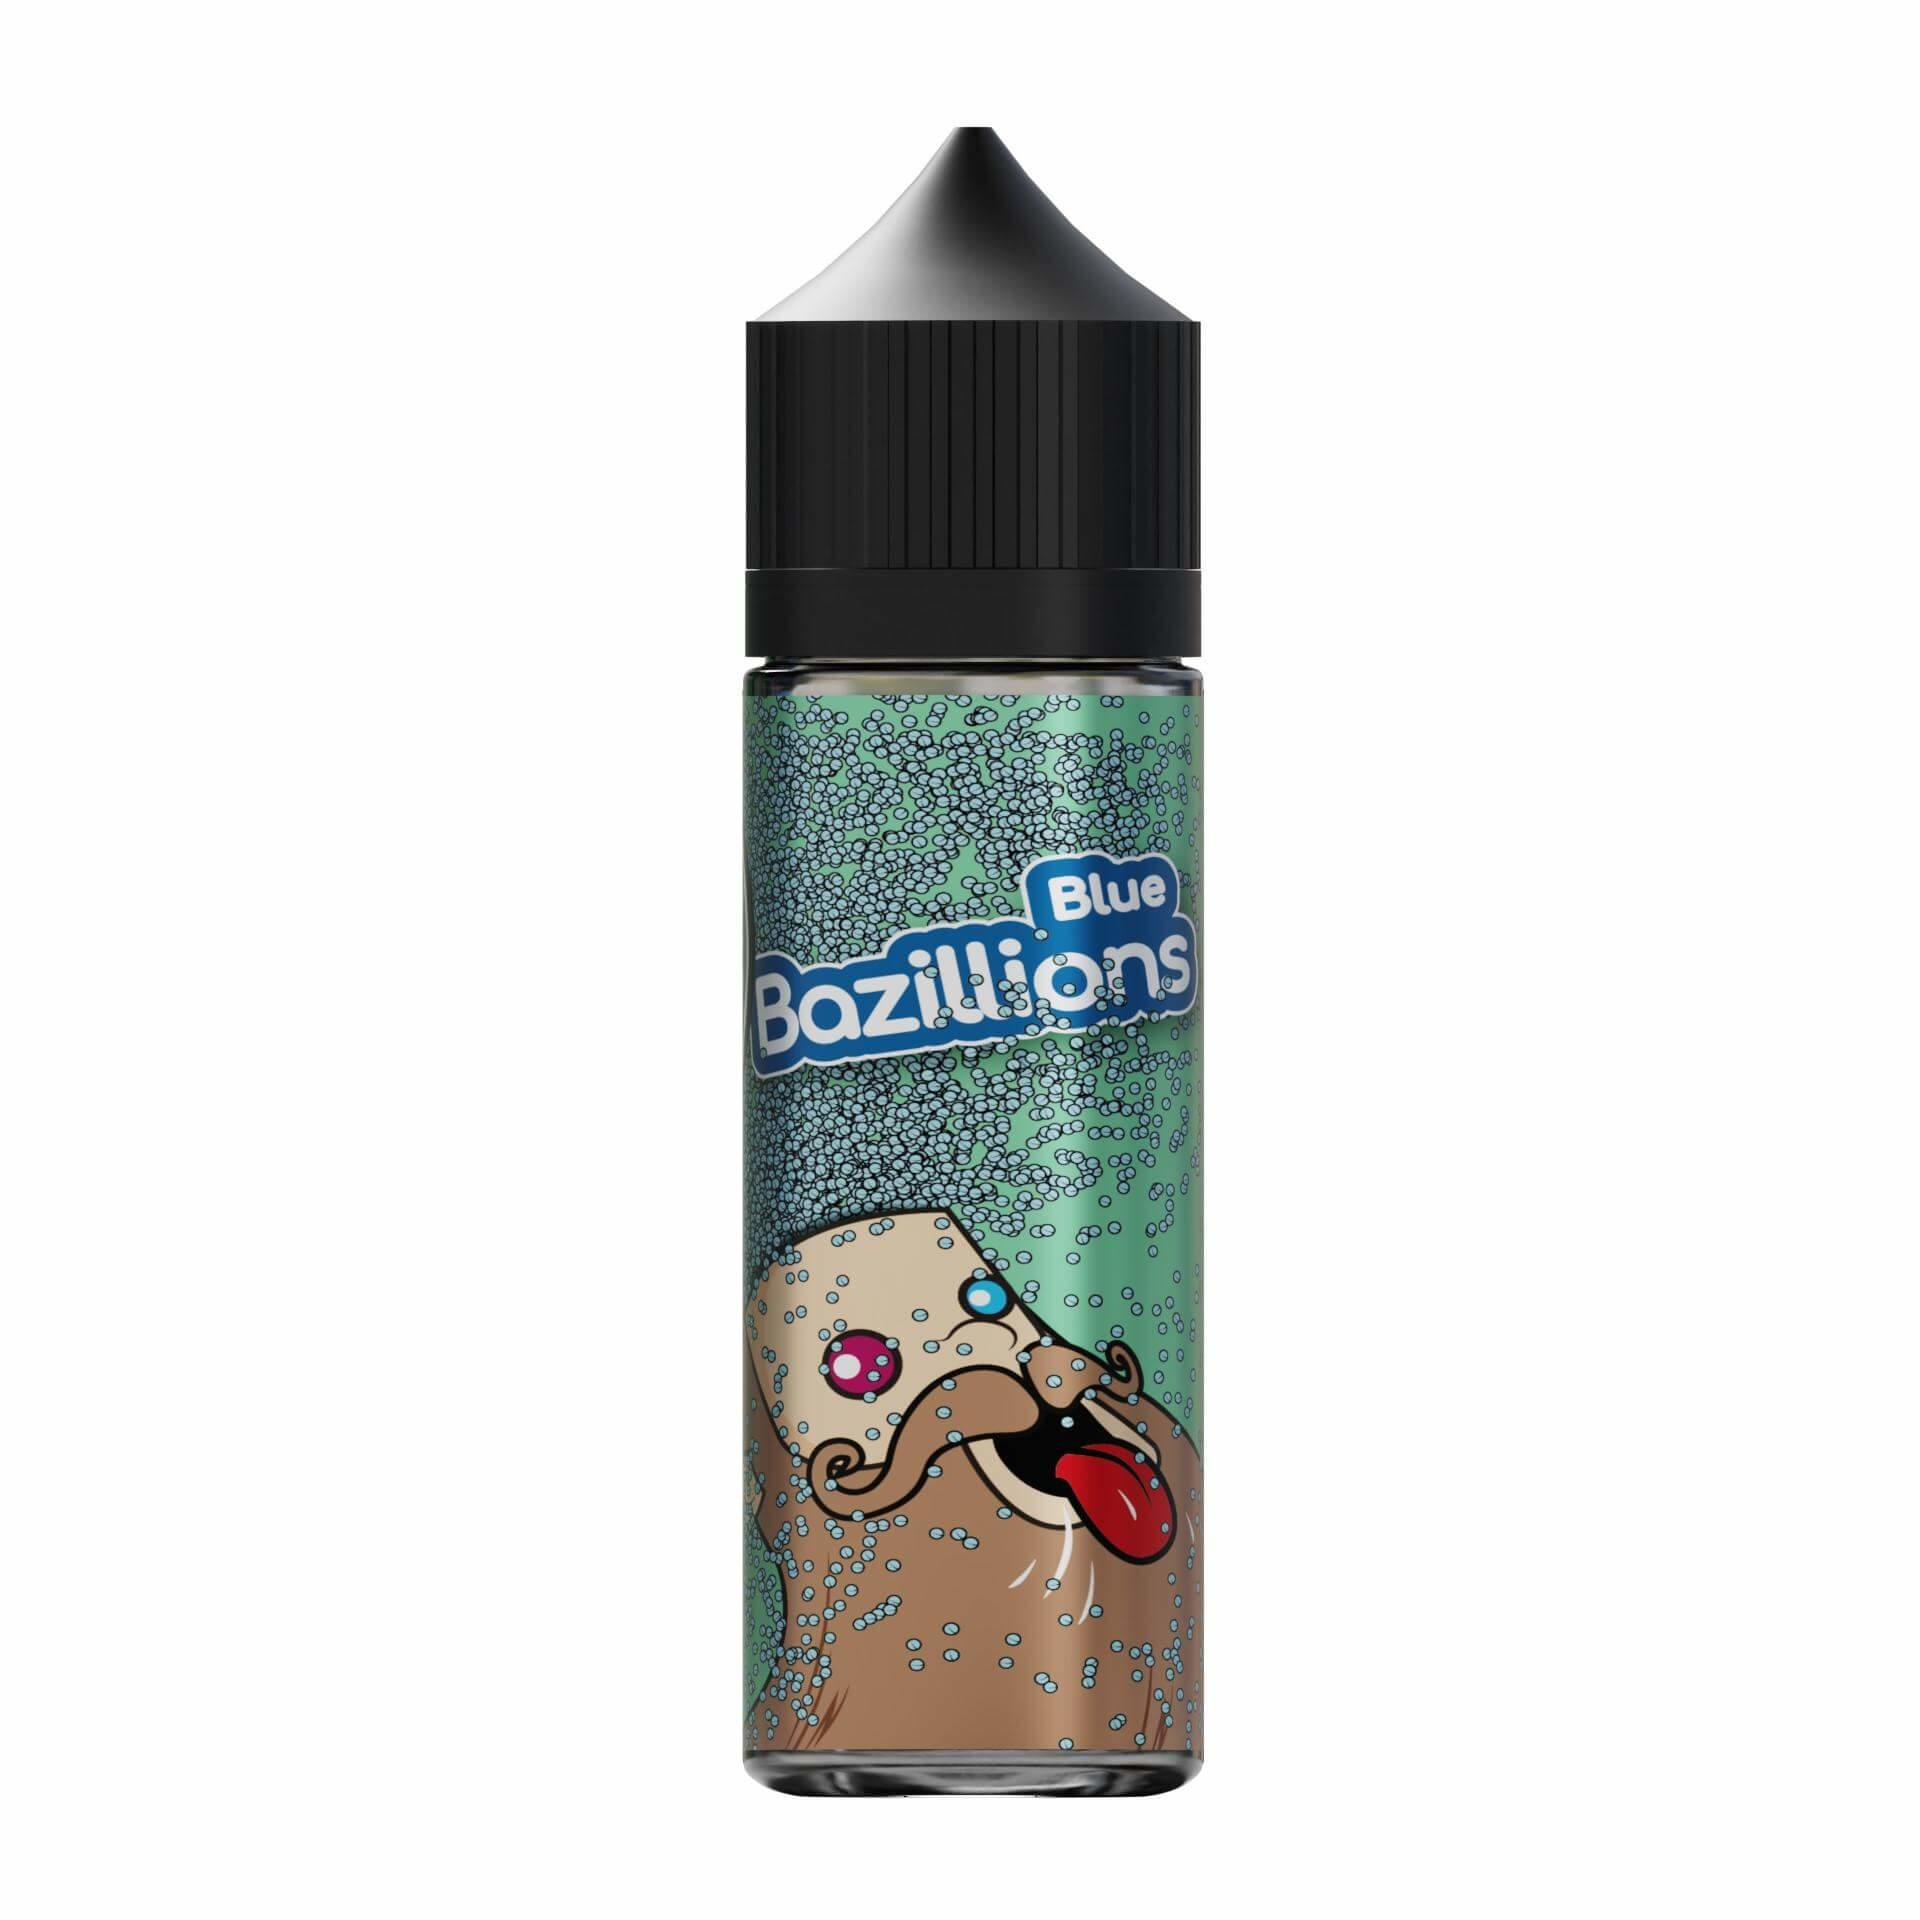 Blue Bazillions Range 0mg Short Fill E Liquid